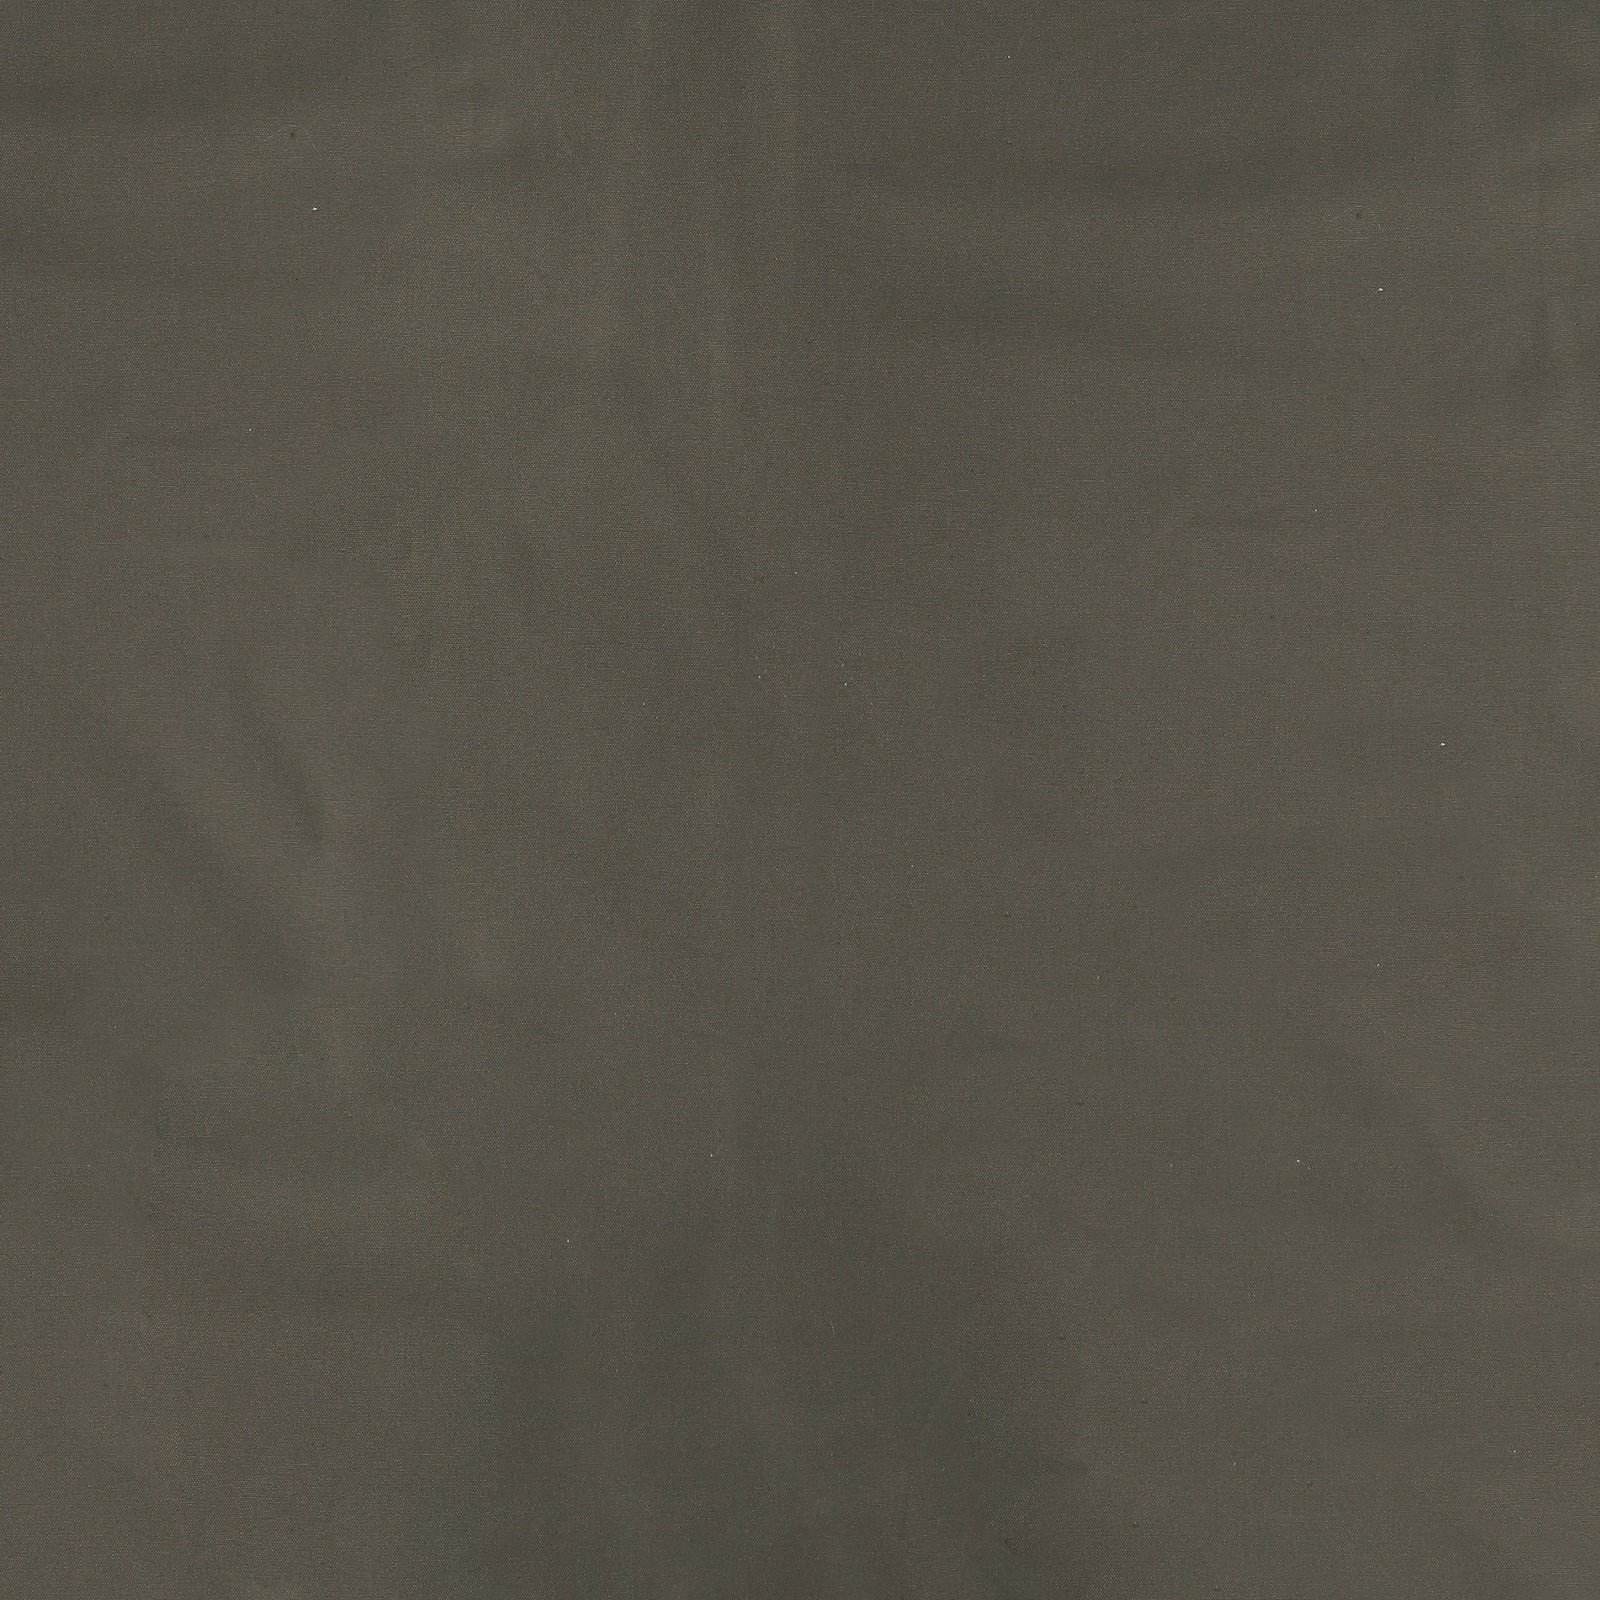 Cotton canvas army green 780403_pack_solid